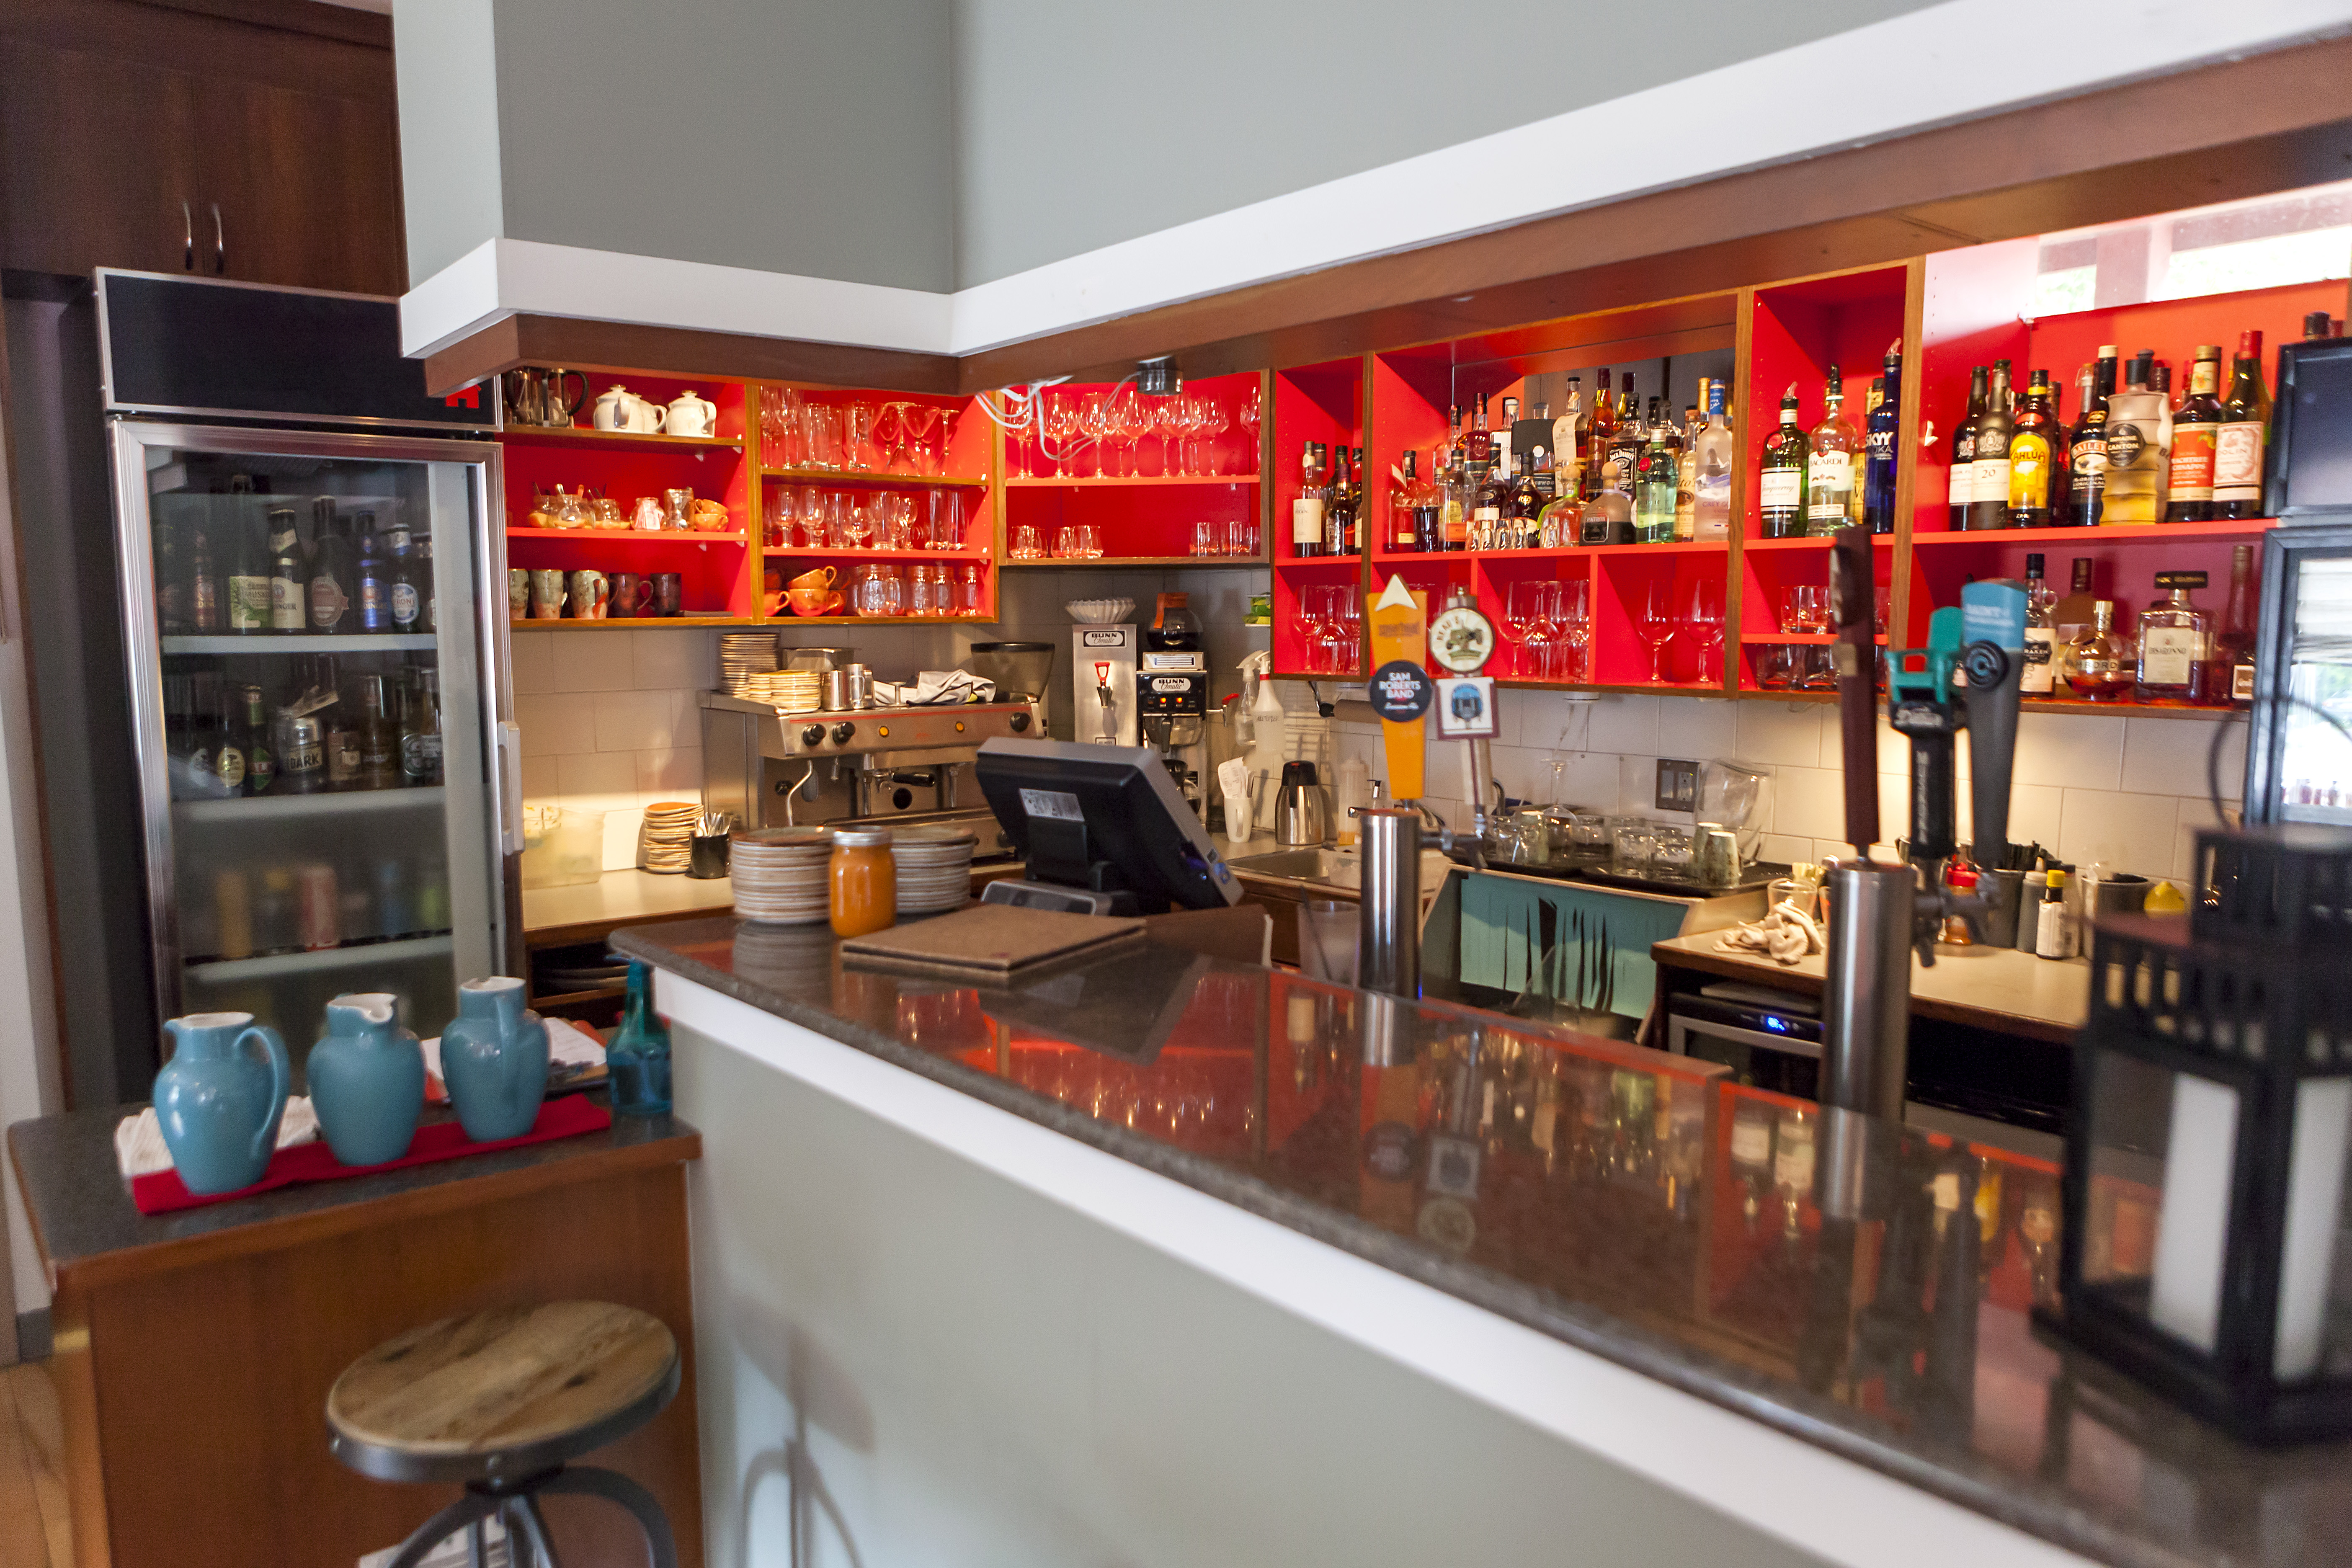 RedHouse serves up Euro-fusion